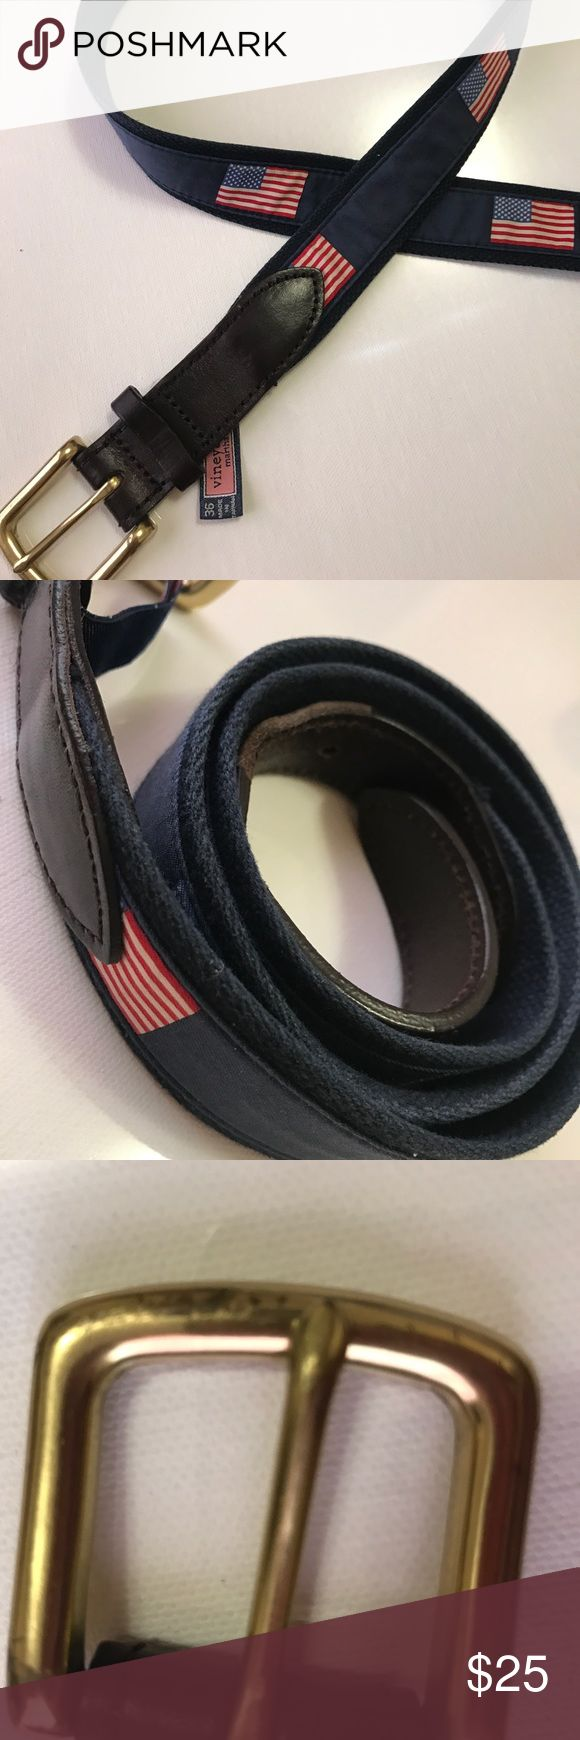 Vineyard Vines Canvas Club American Flag Belt sz36 Size 36! Has been well loved! All wear is pictured but I will mention here that a little bit of the leather strip is missing on the top of the leather belt holes. Make me an offer on what you think is fair :) Vineyard Vines Accessories Belts